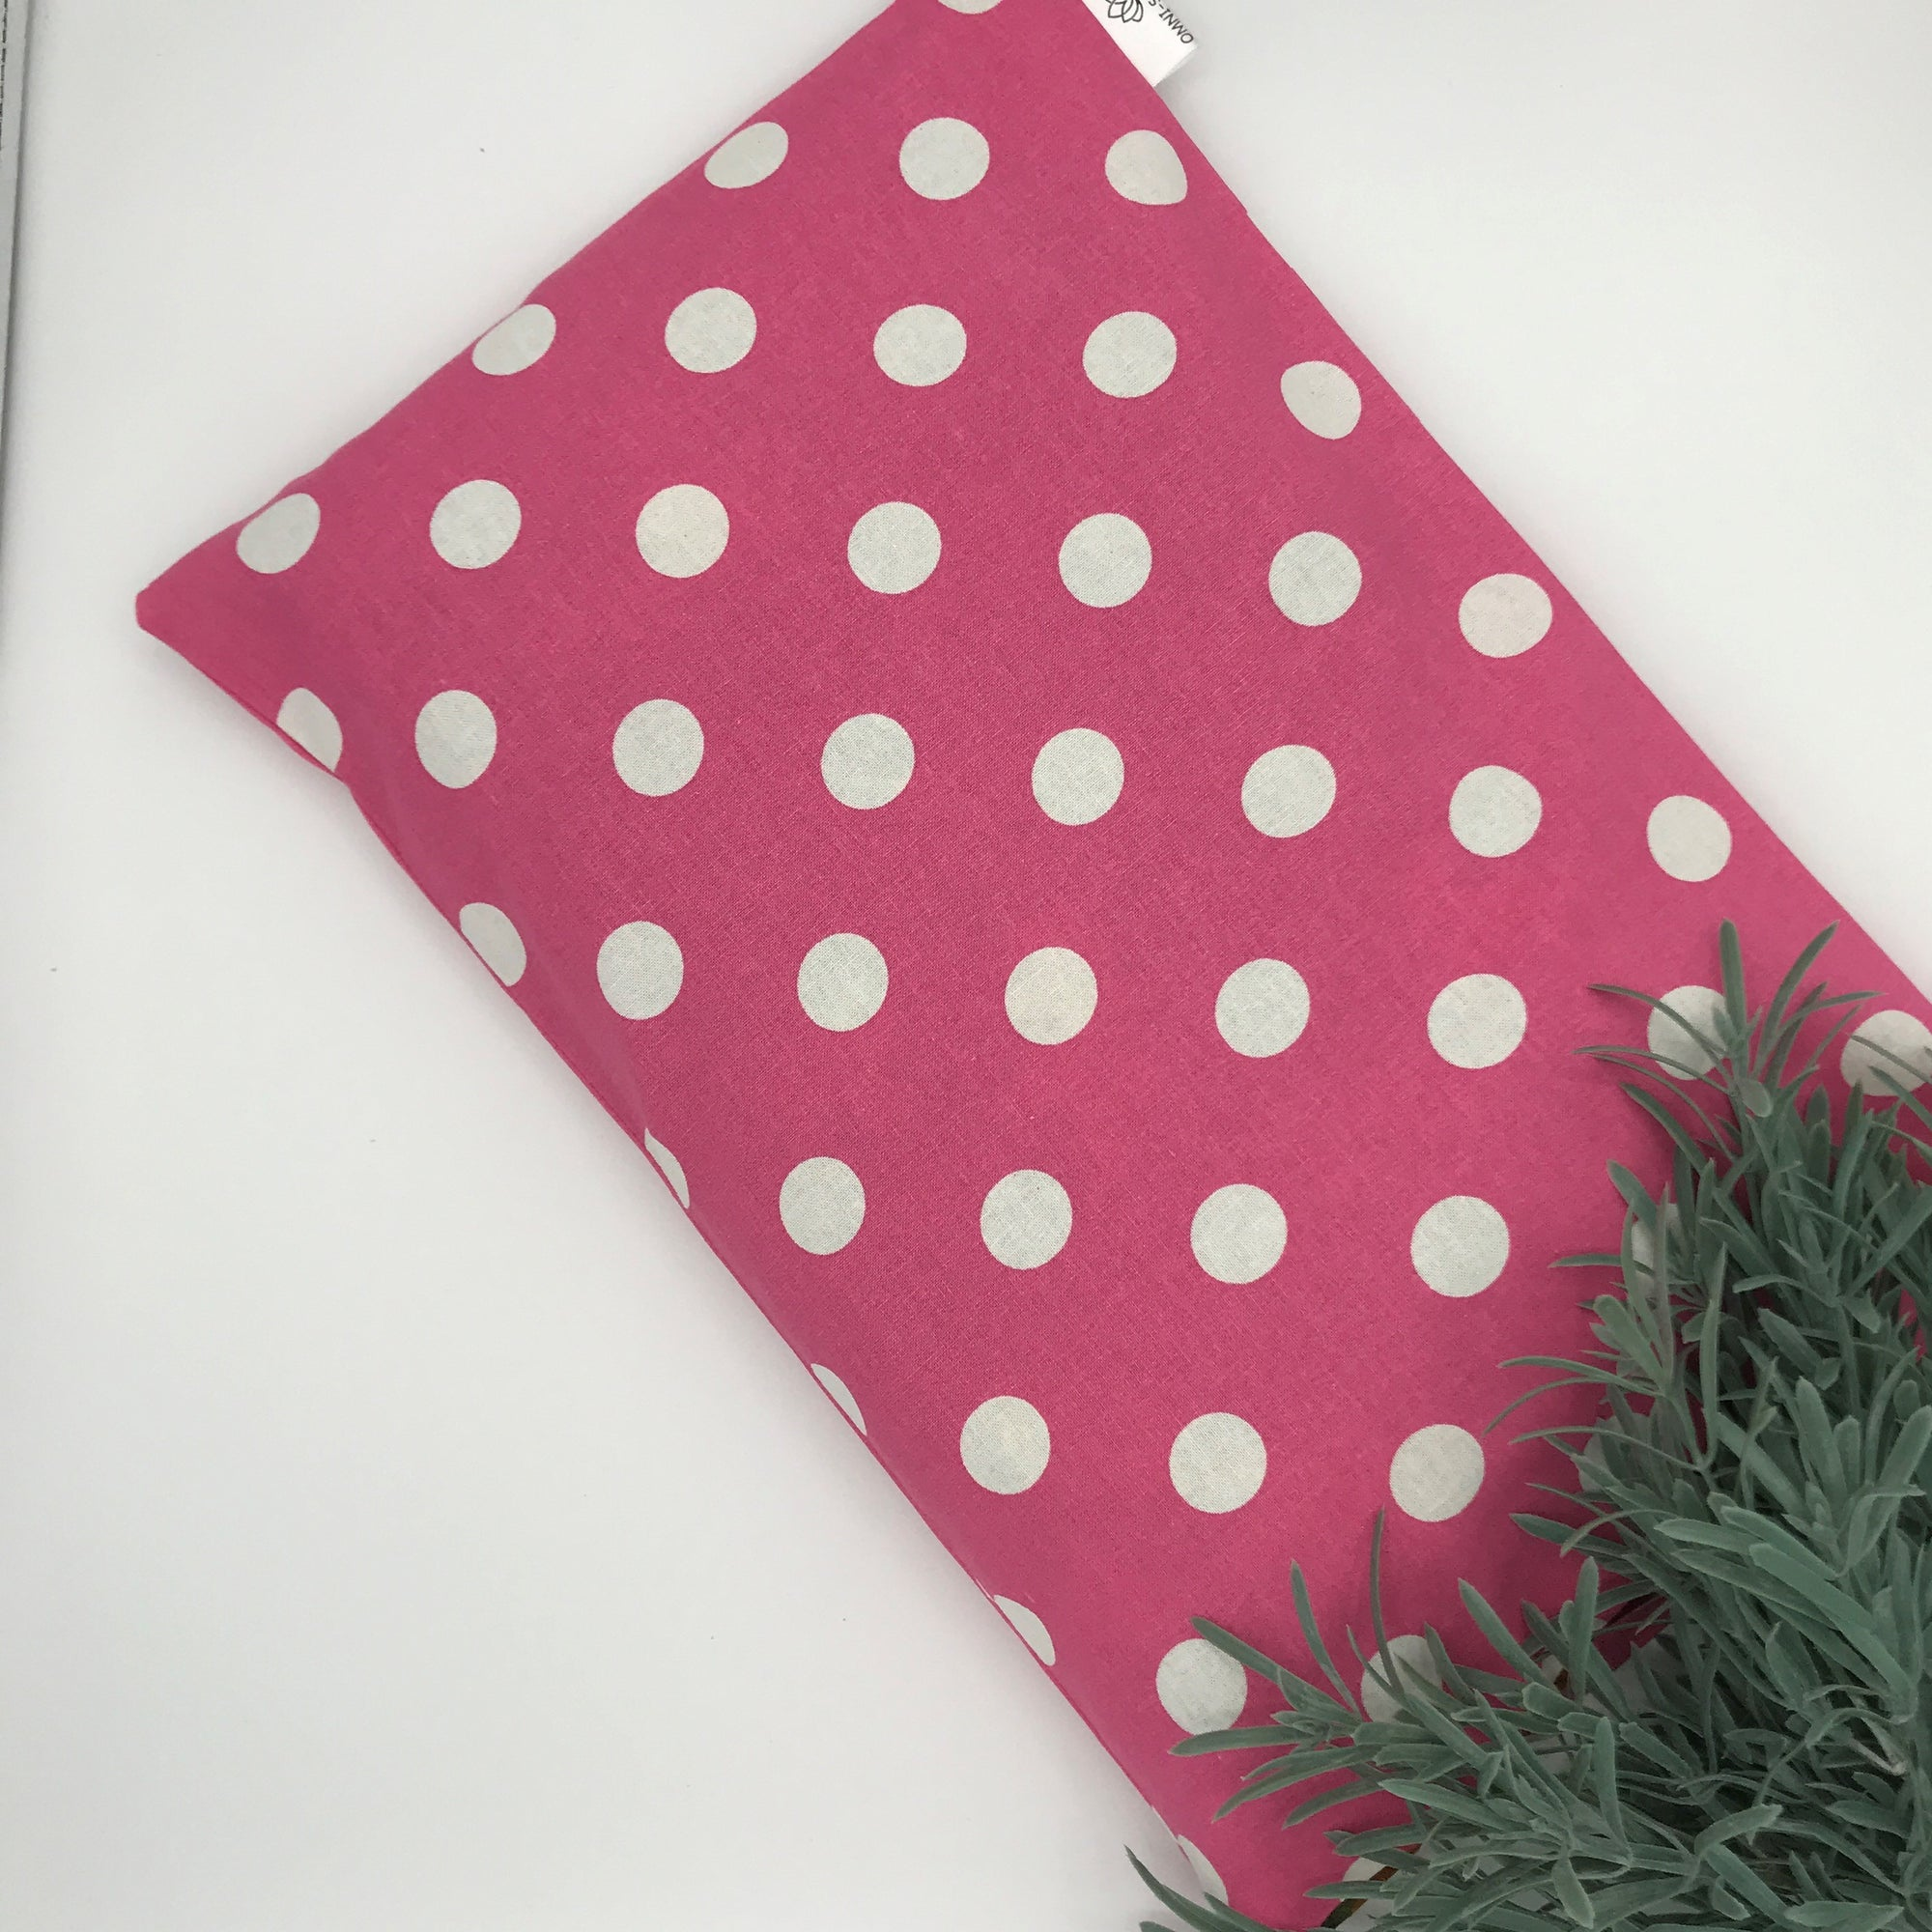 HUGGY PILLOW - Pink Polka Dot